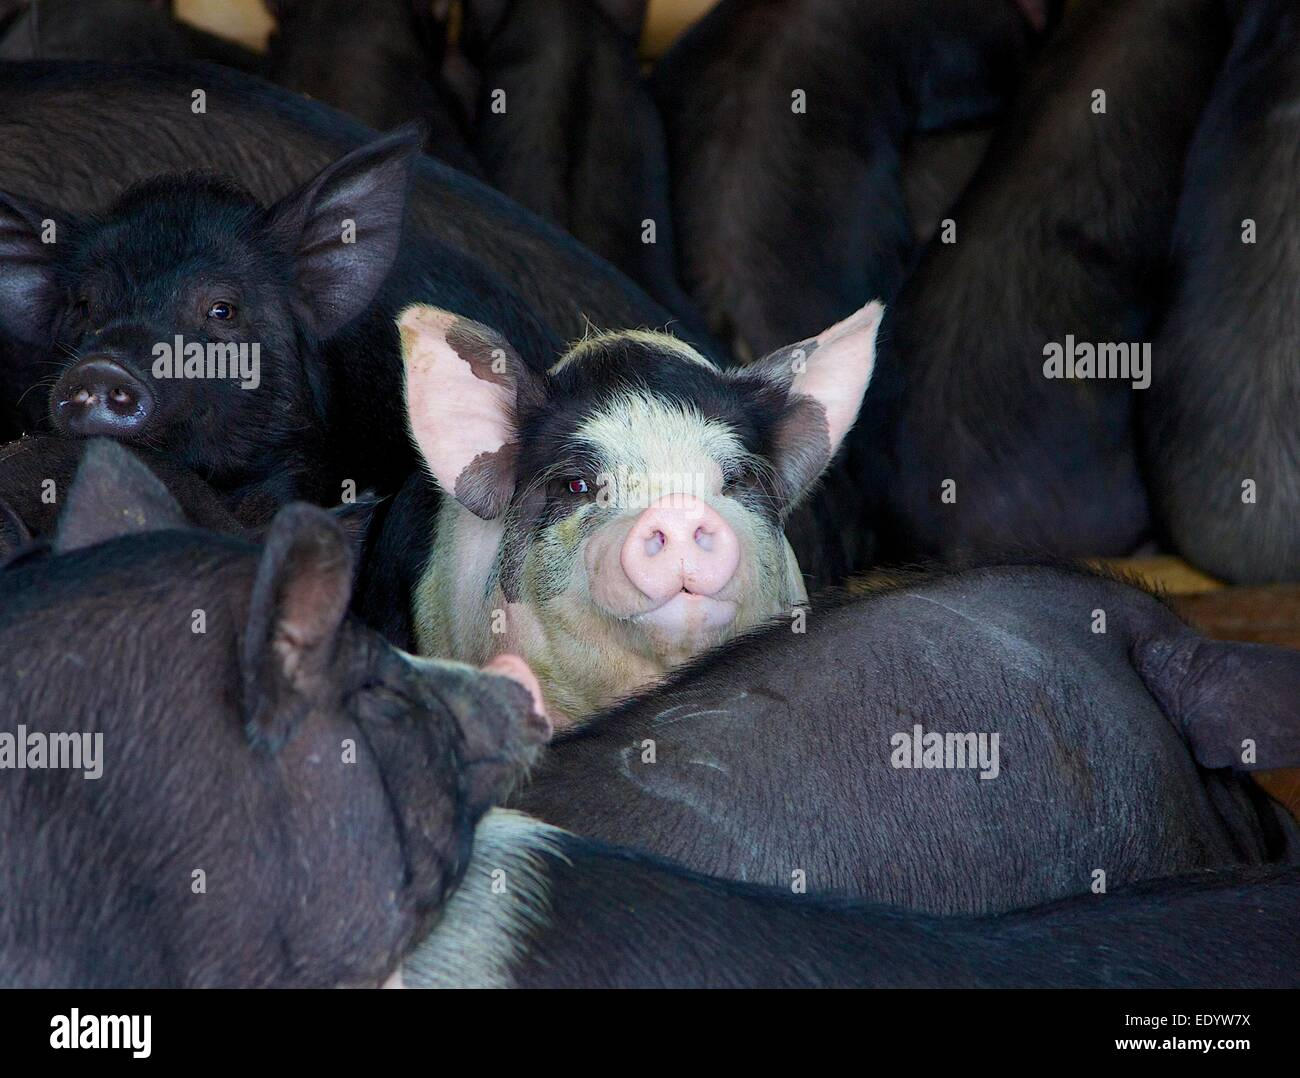 The odd one out. White pig amongst black pigs at Rantepao market, Sulawesi - Stock Image